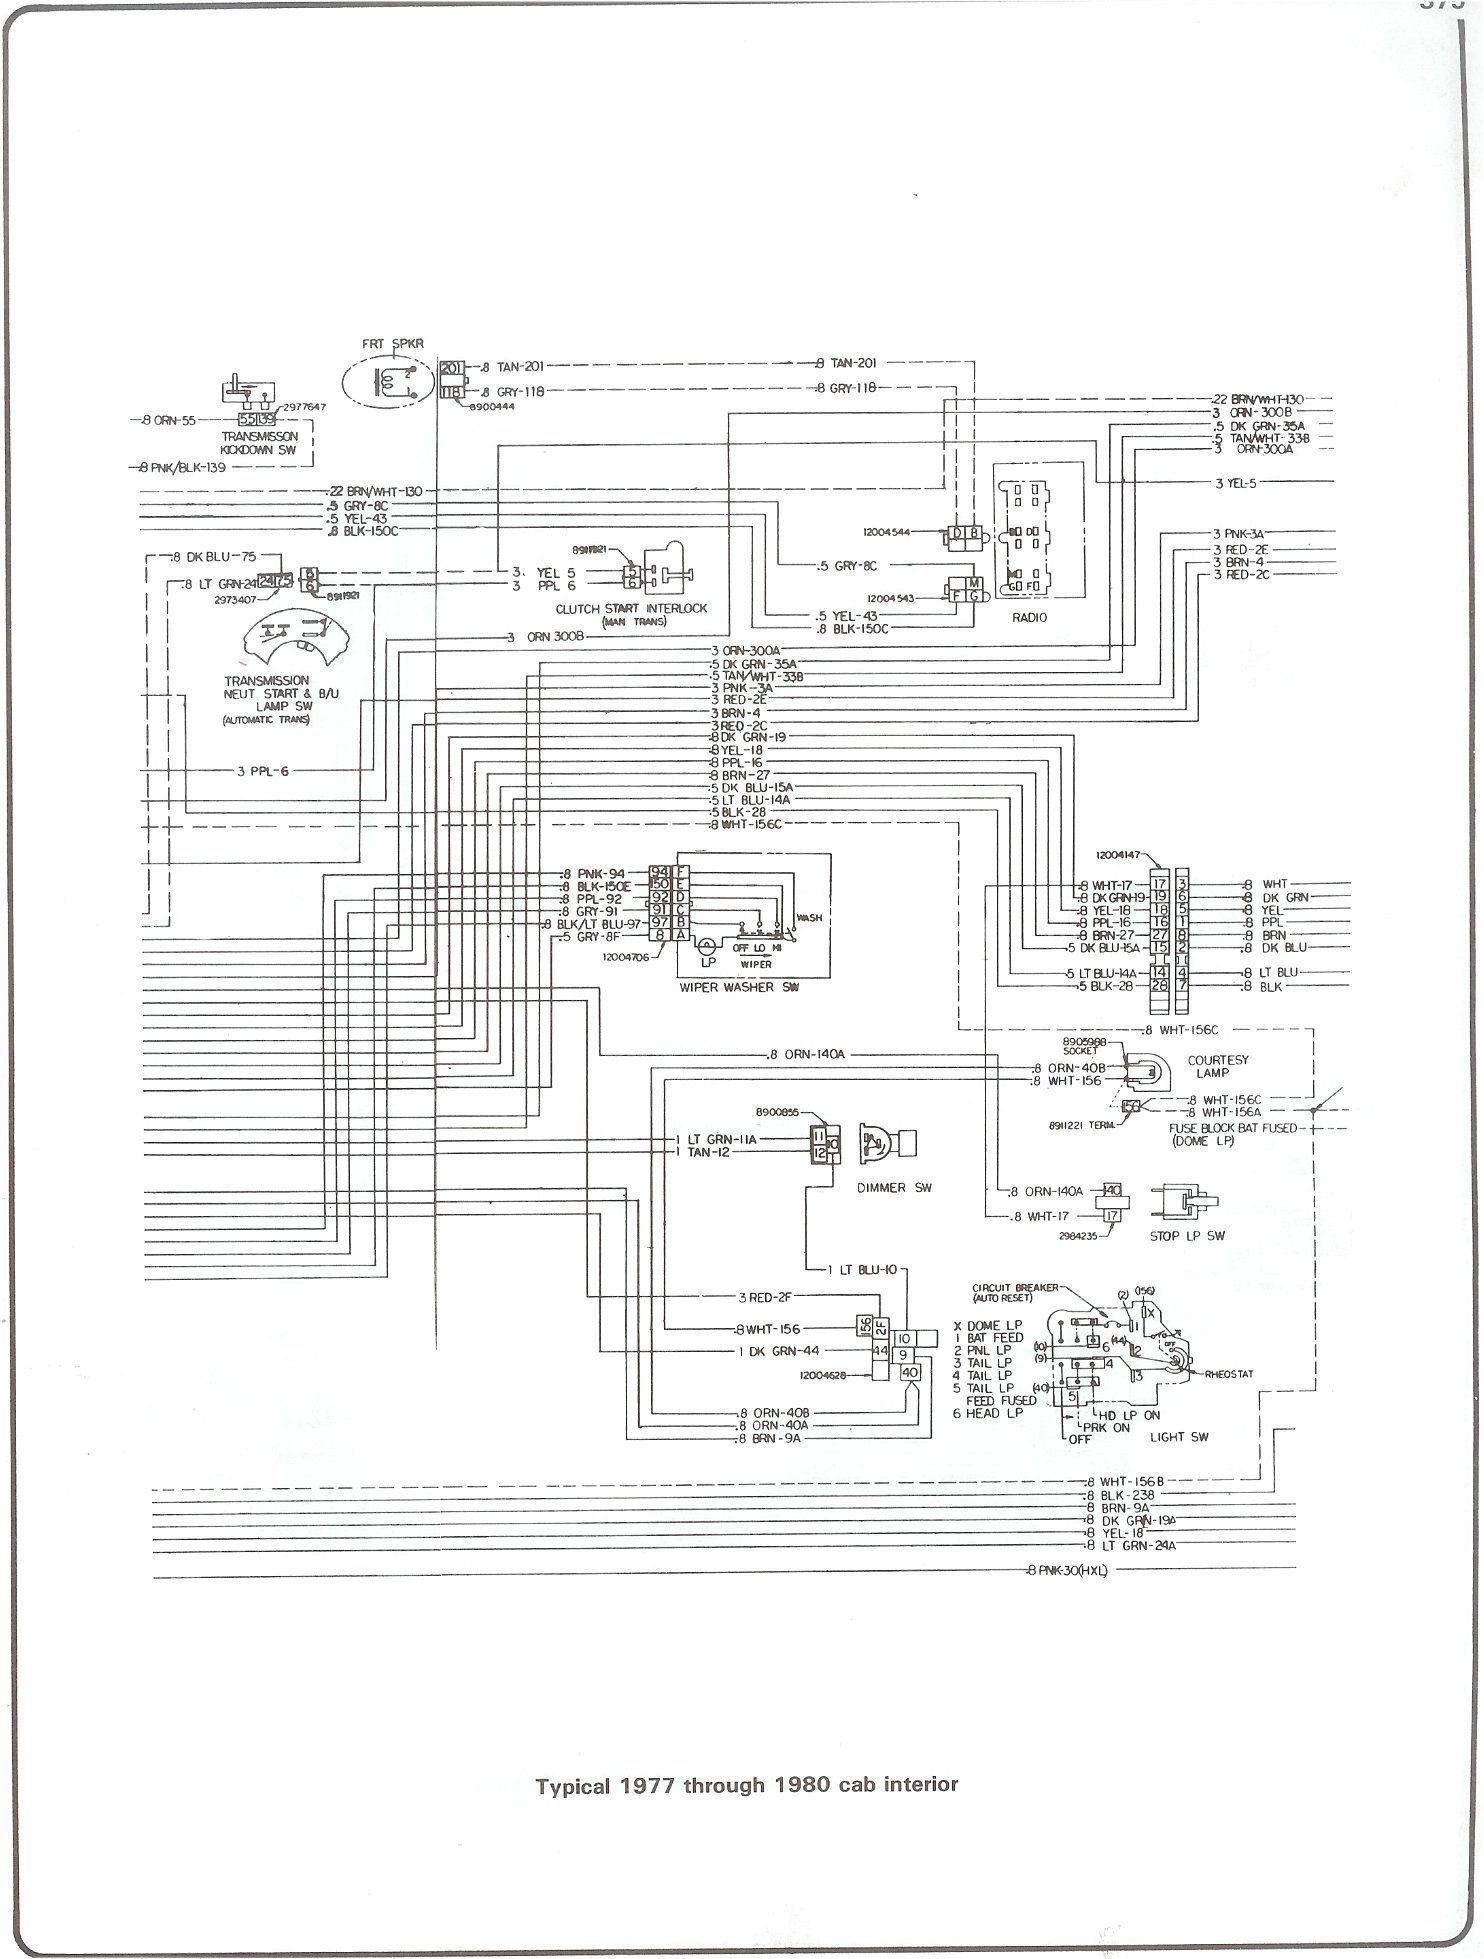 1987 Chevy C30 Wiring Diagram Free For You Engine 1989 Ford 73l Diesel Complete 73 87 Diagrams Rh Forum 87chevytrucks Com 1500